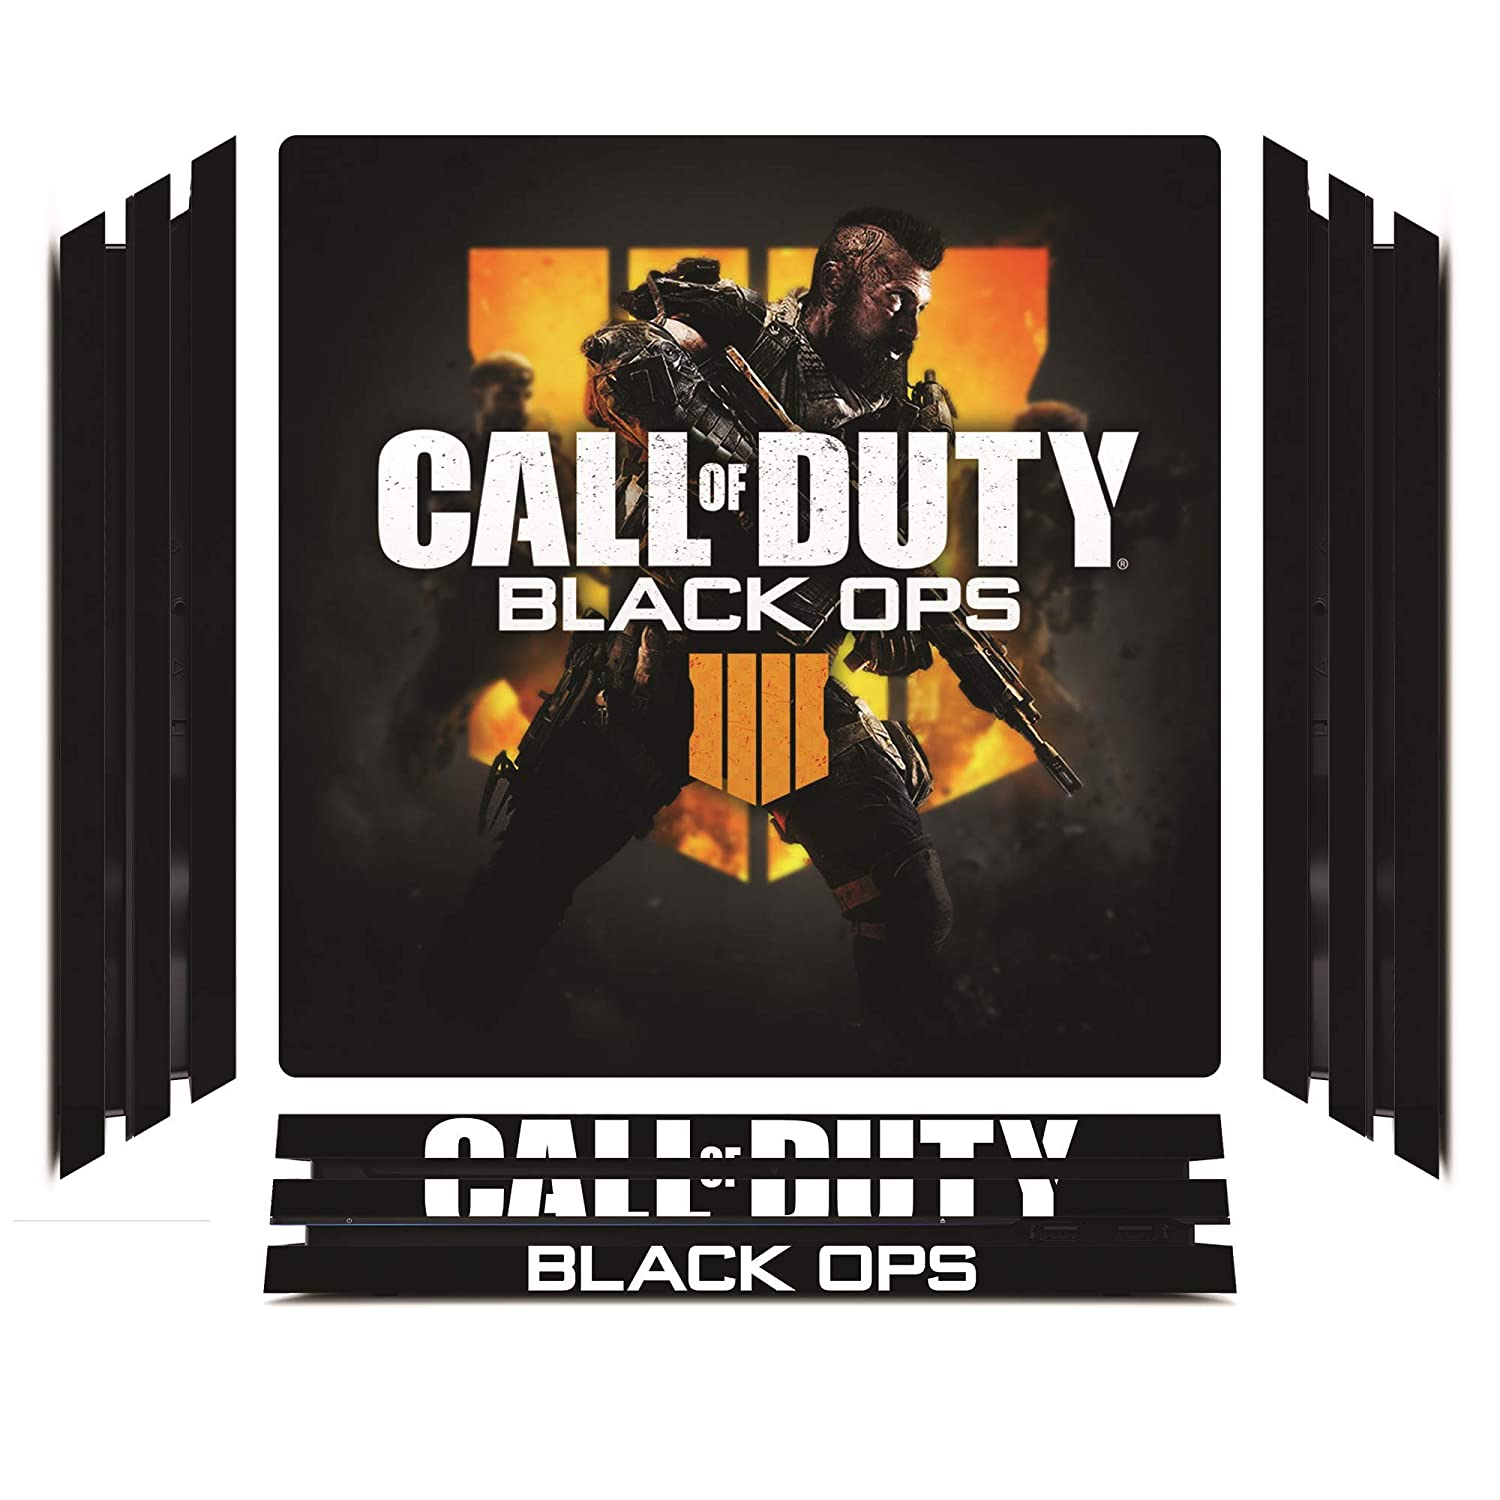 Call of Duty: Black Ops 4 IV BOPS4 BLOPS4 Game Skin for Sony Playstation 4 Pro - PS4 Pro Console - 100% Satisfaction Guarantee!